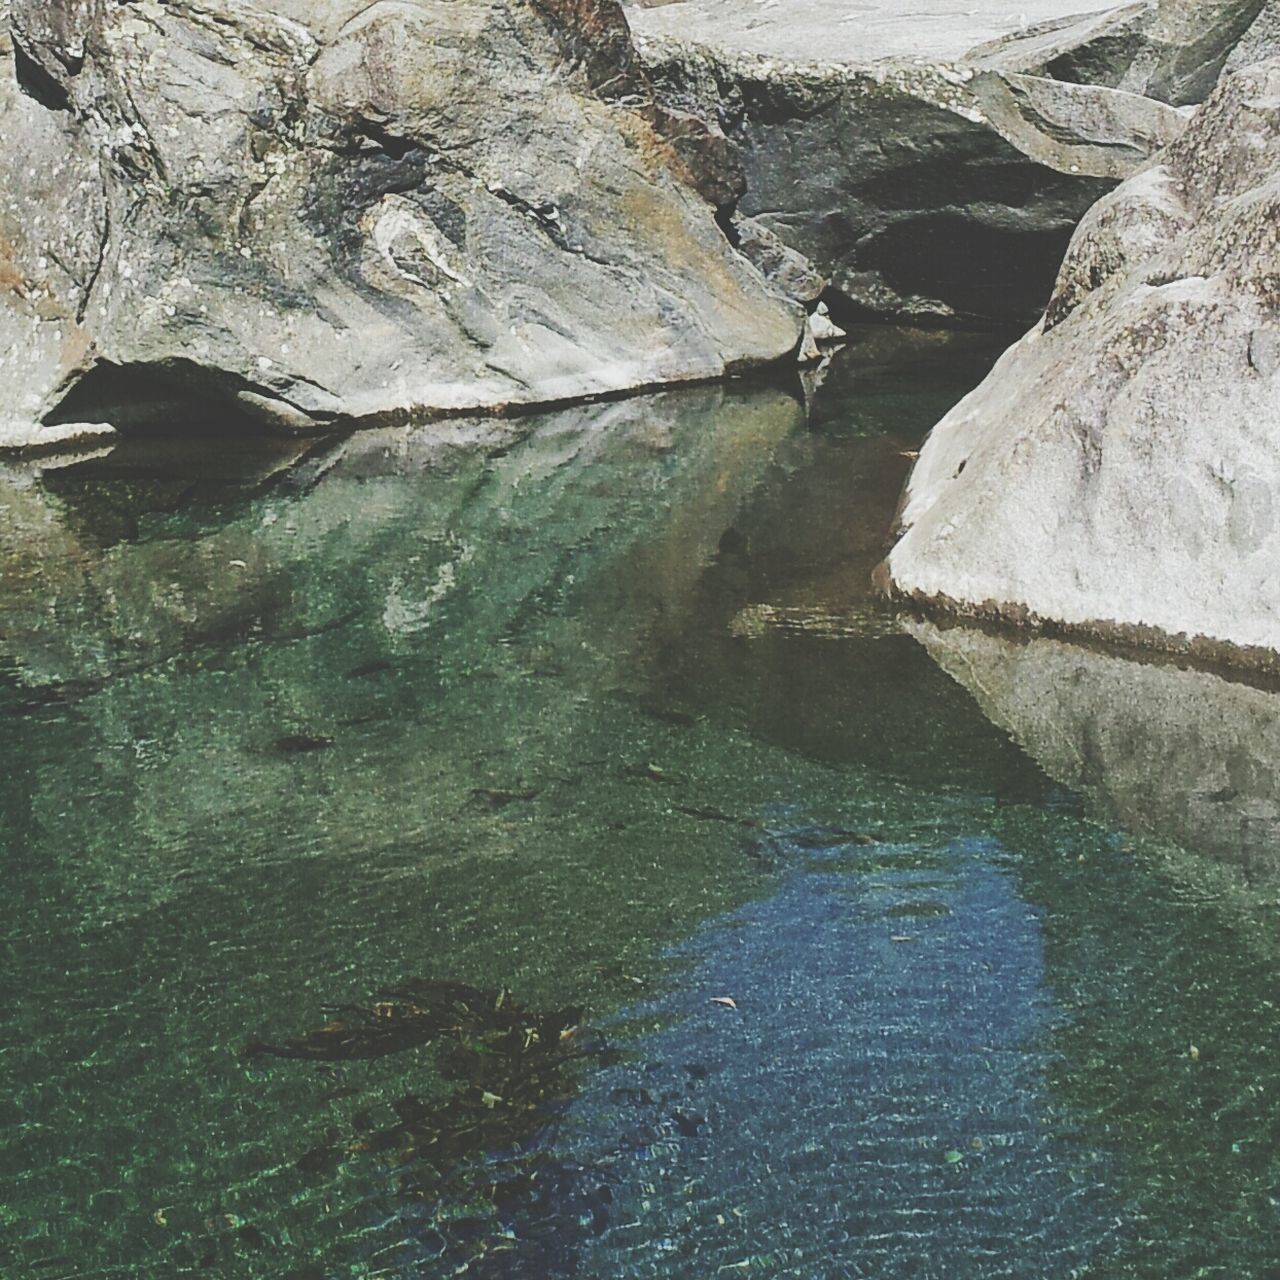 Close-up of rippled water against rocks